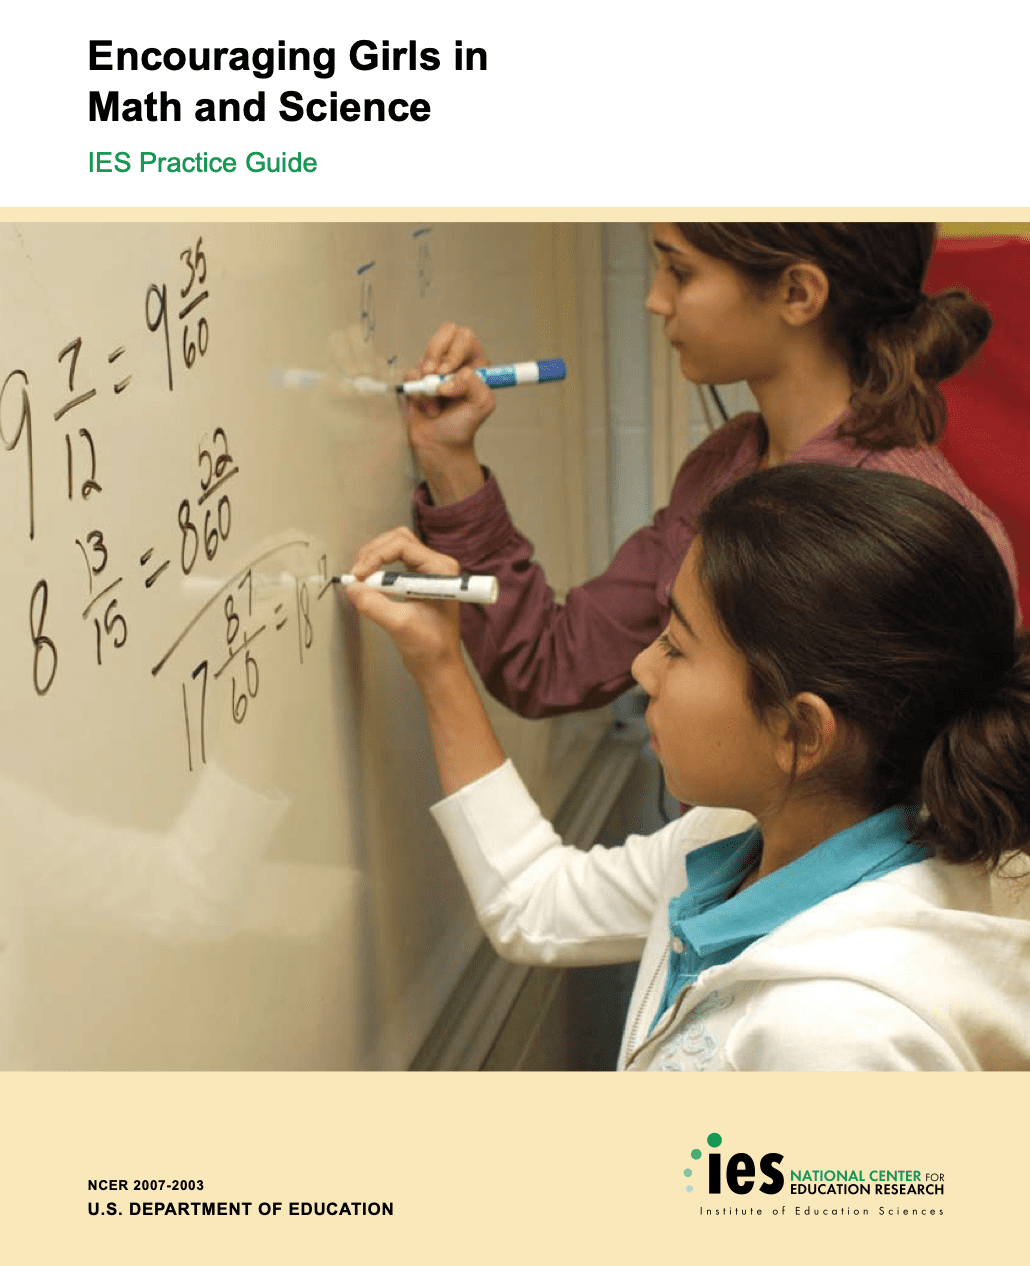 Cover of resource with photo of two girls solving math problems on a whiteboard